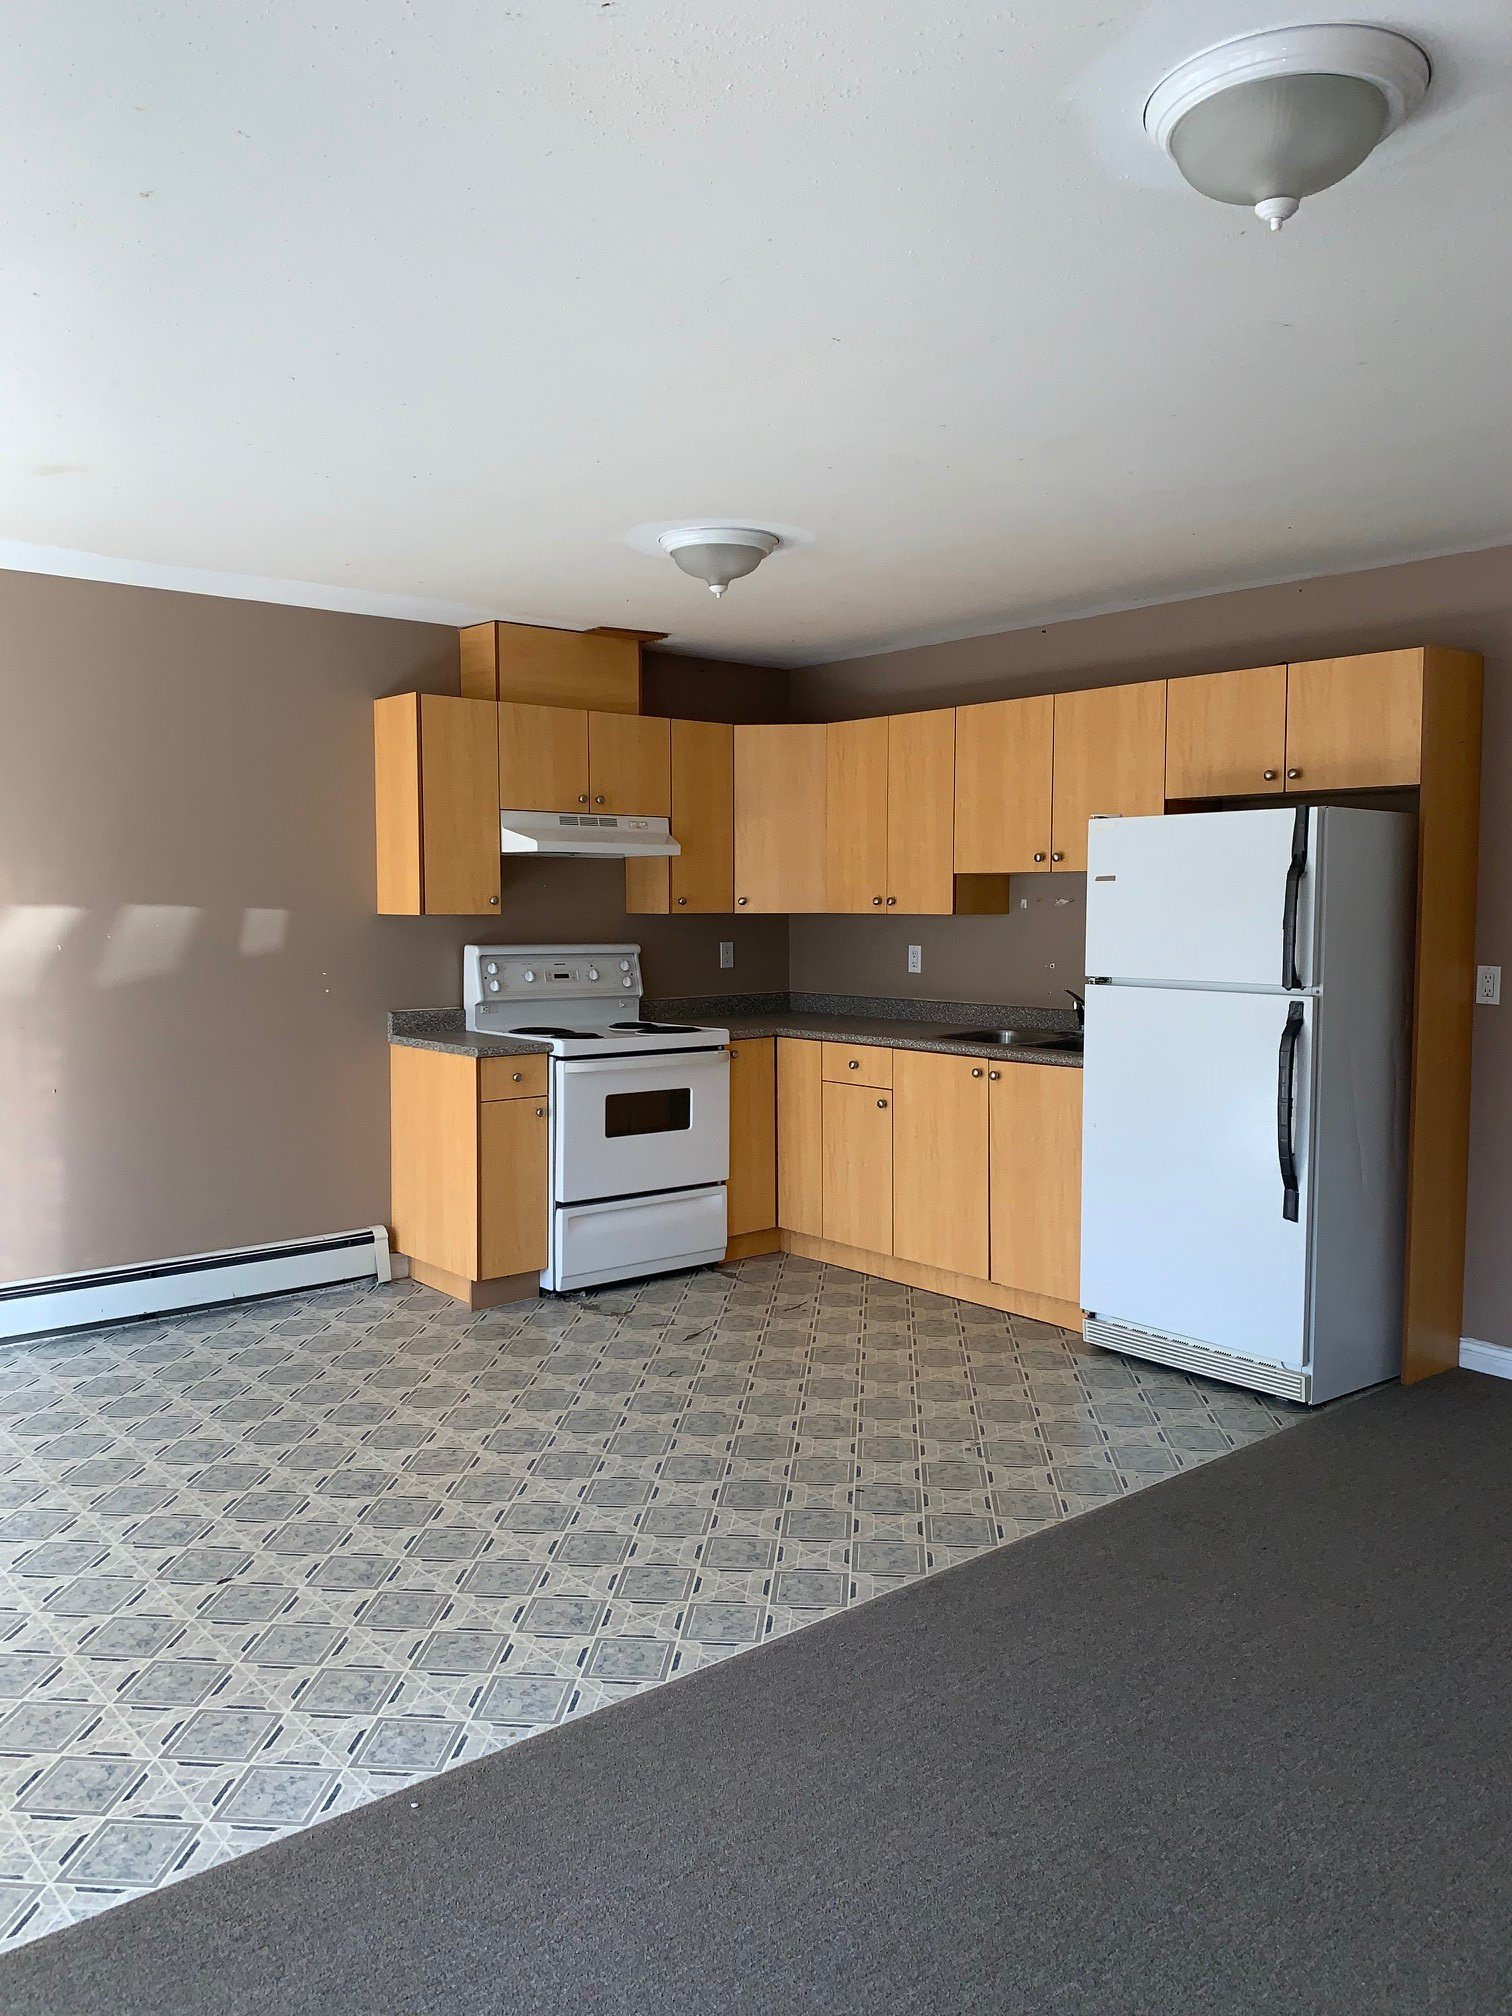 Main Photo: BSMT 267 Columbia St. in Abbotsford: Condo for rent